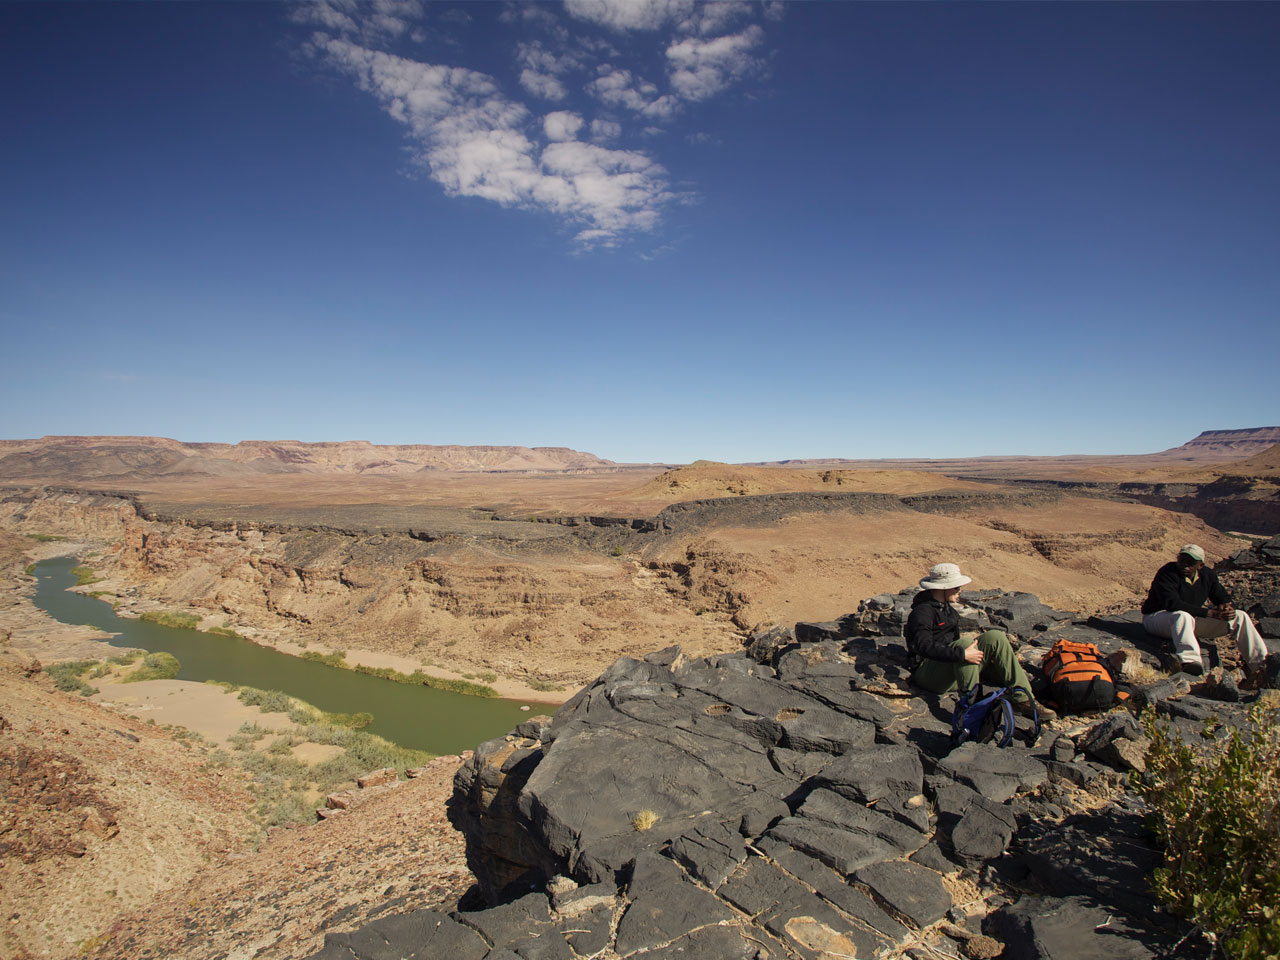 A guide and guest sitting with her backpacks on a cliff overlooking water in the Fish River Canyon below.